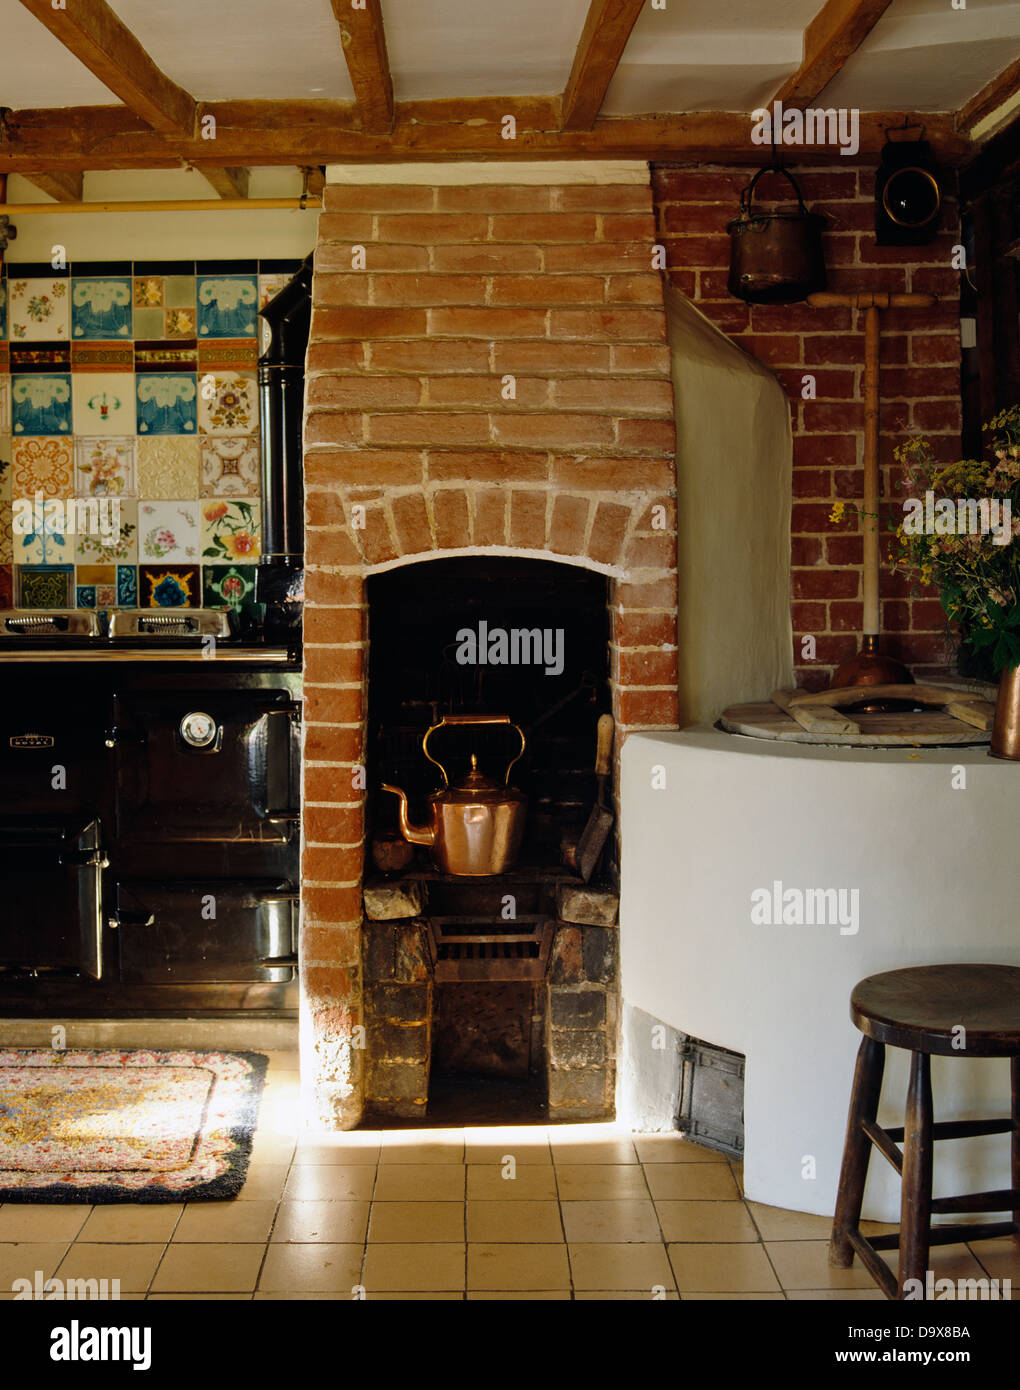 Black Country Kitchen copper kettle on original brick stove in country kitchen with